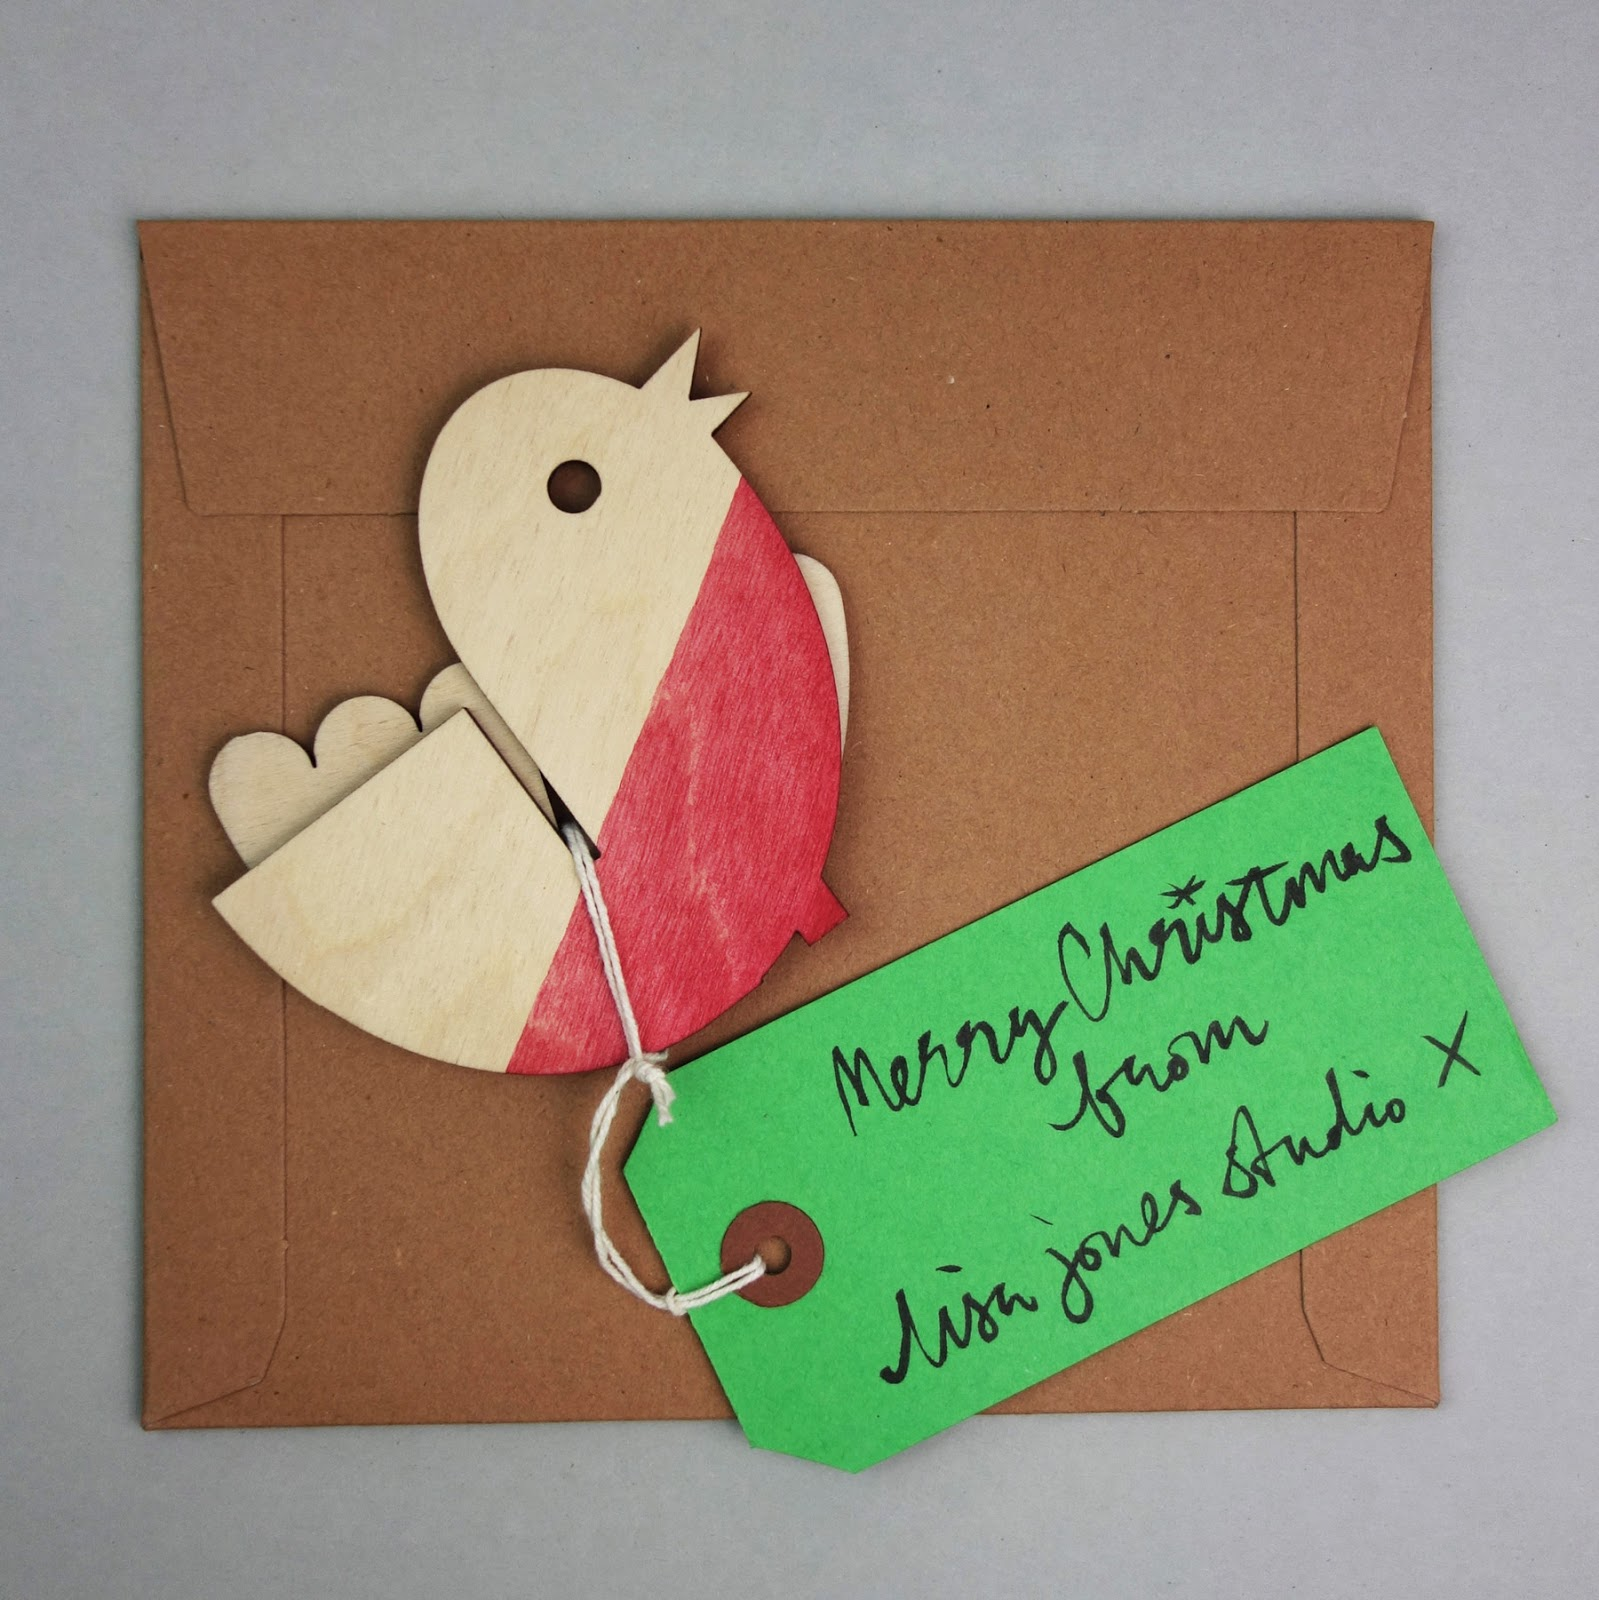 Plywood Christmas robin maquette 2014, package